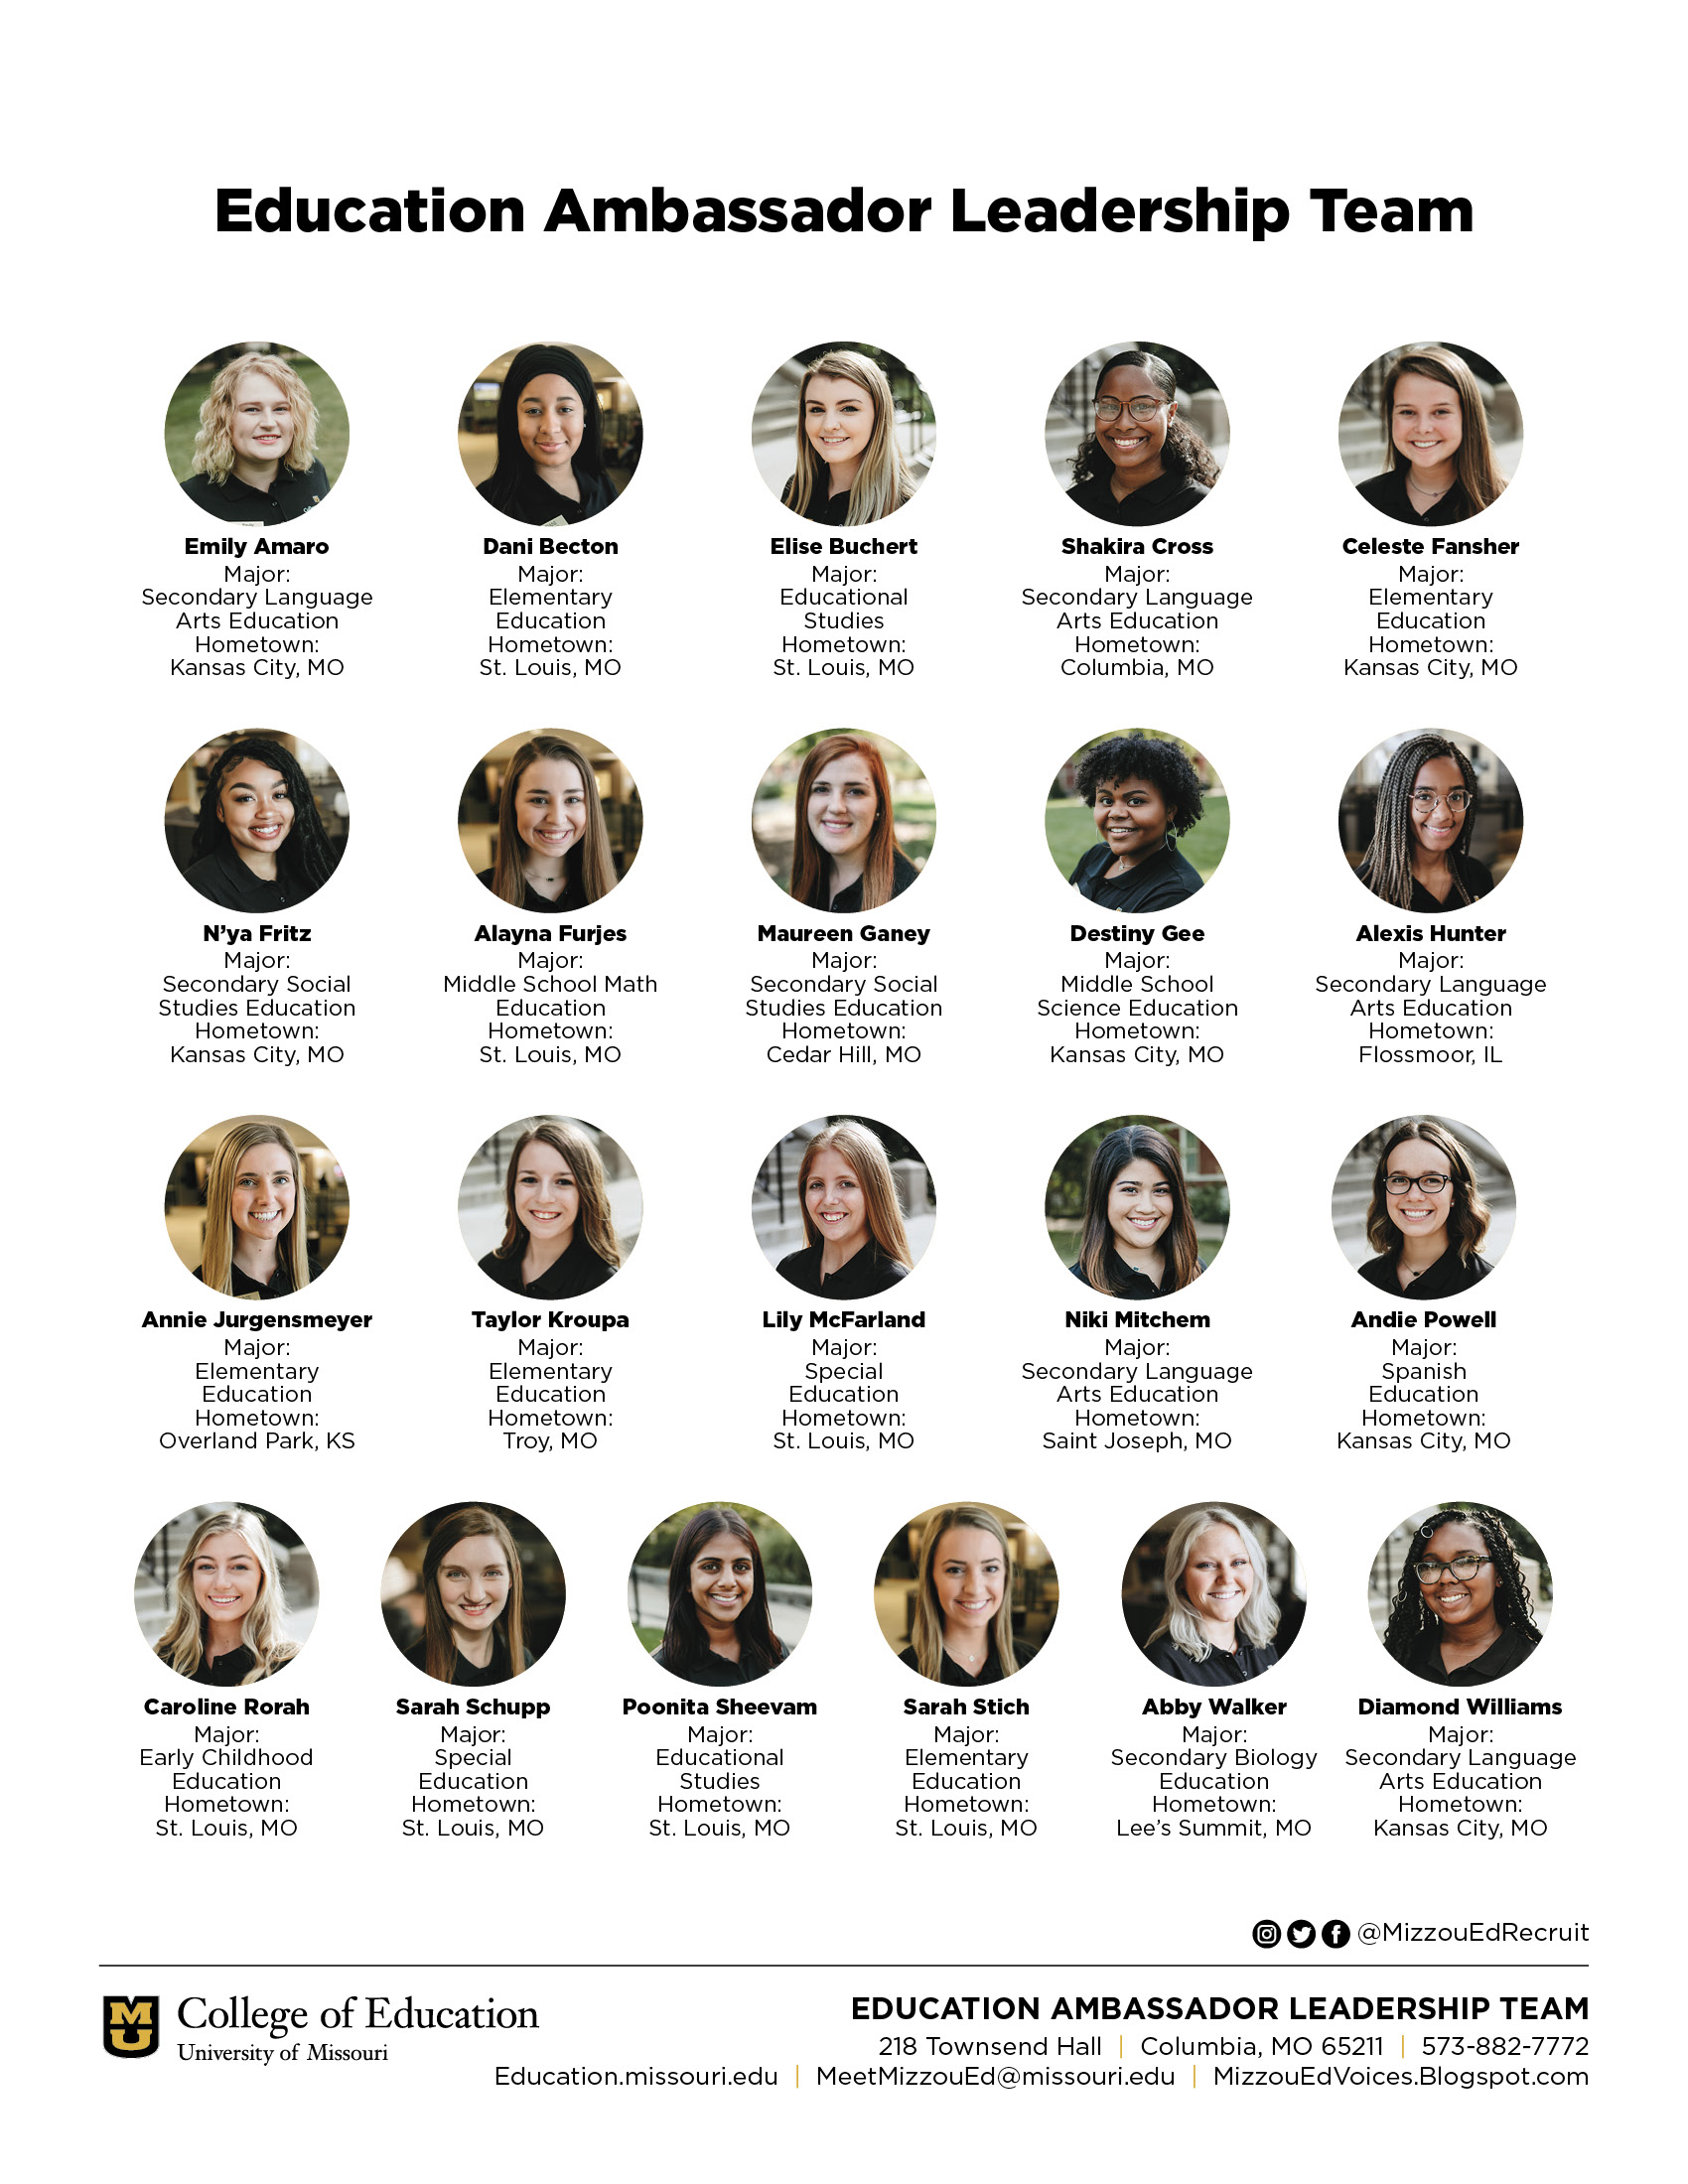 College of Education Ambassadors Leadership Team, University of Missouri, jpeg links to pdf file